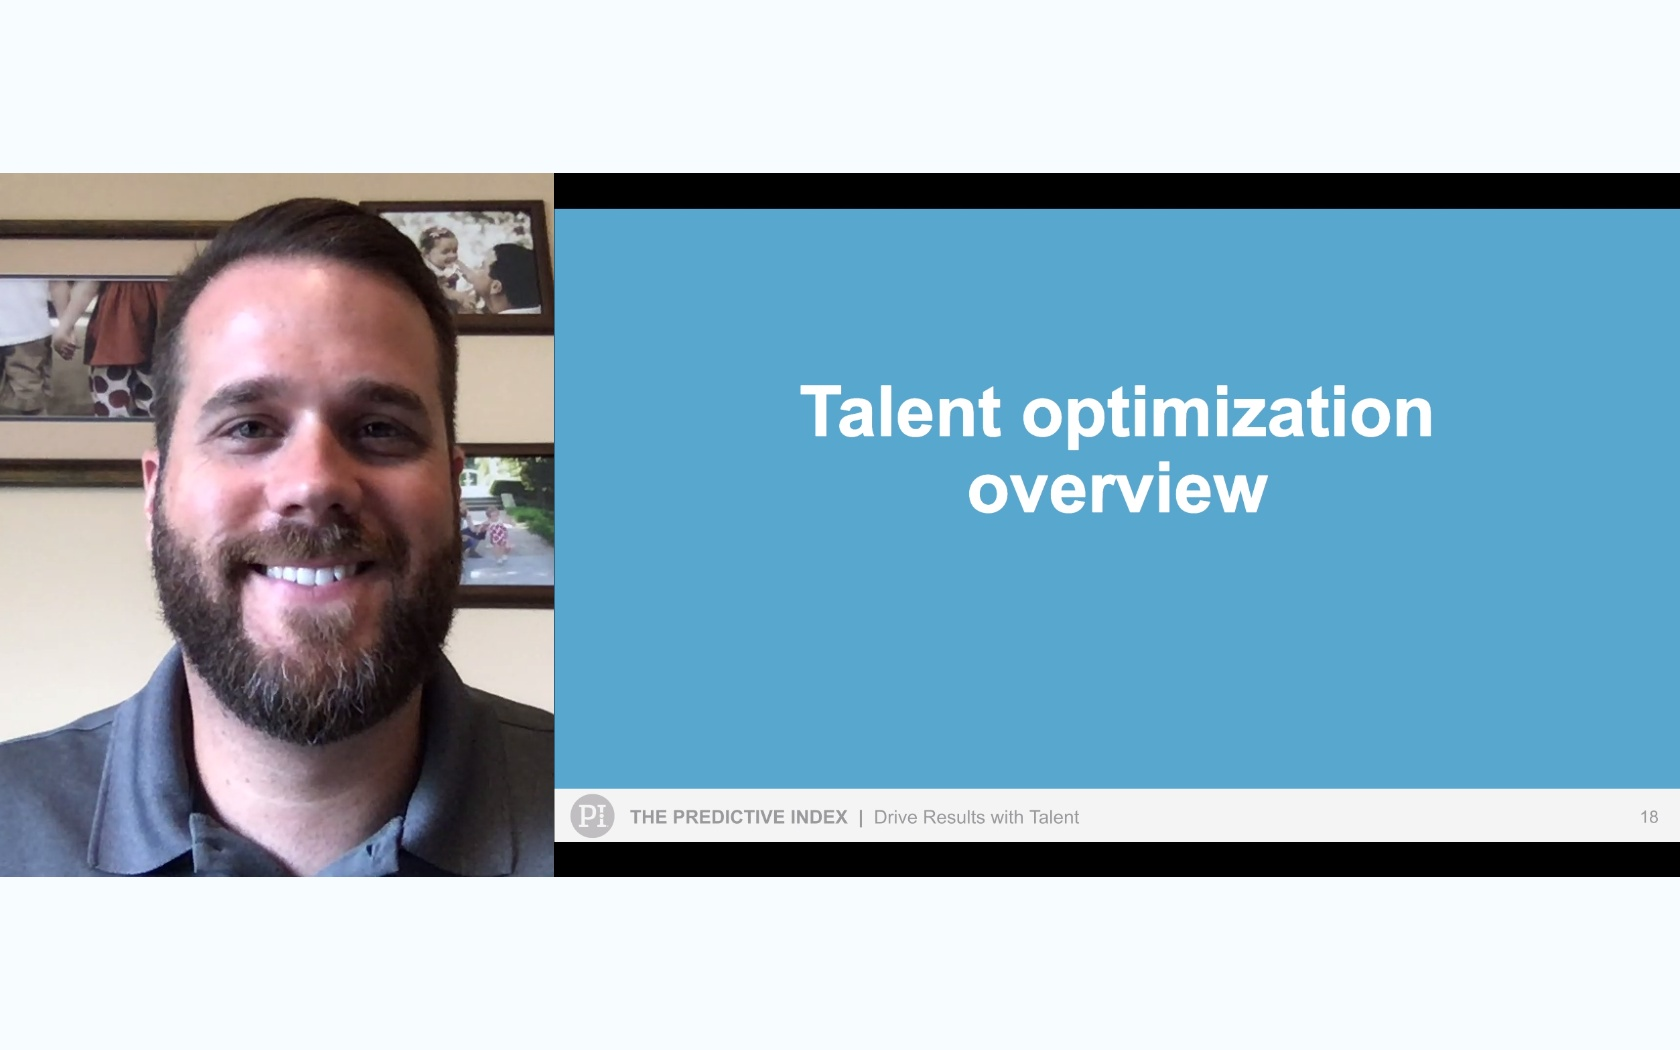 Drive Results with Talent Workshop - 3. Talent Optimization Overview